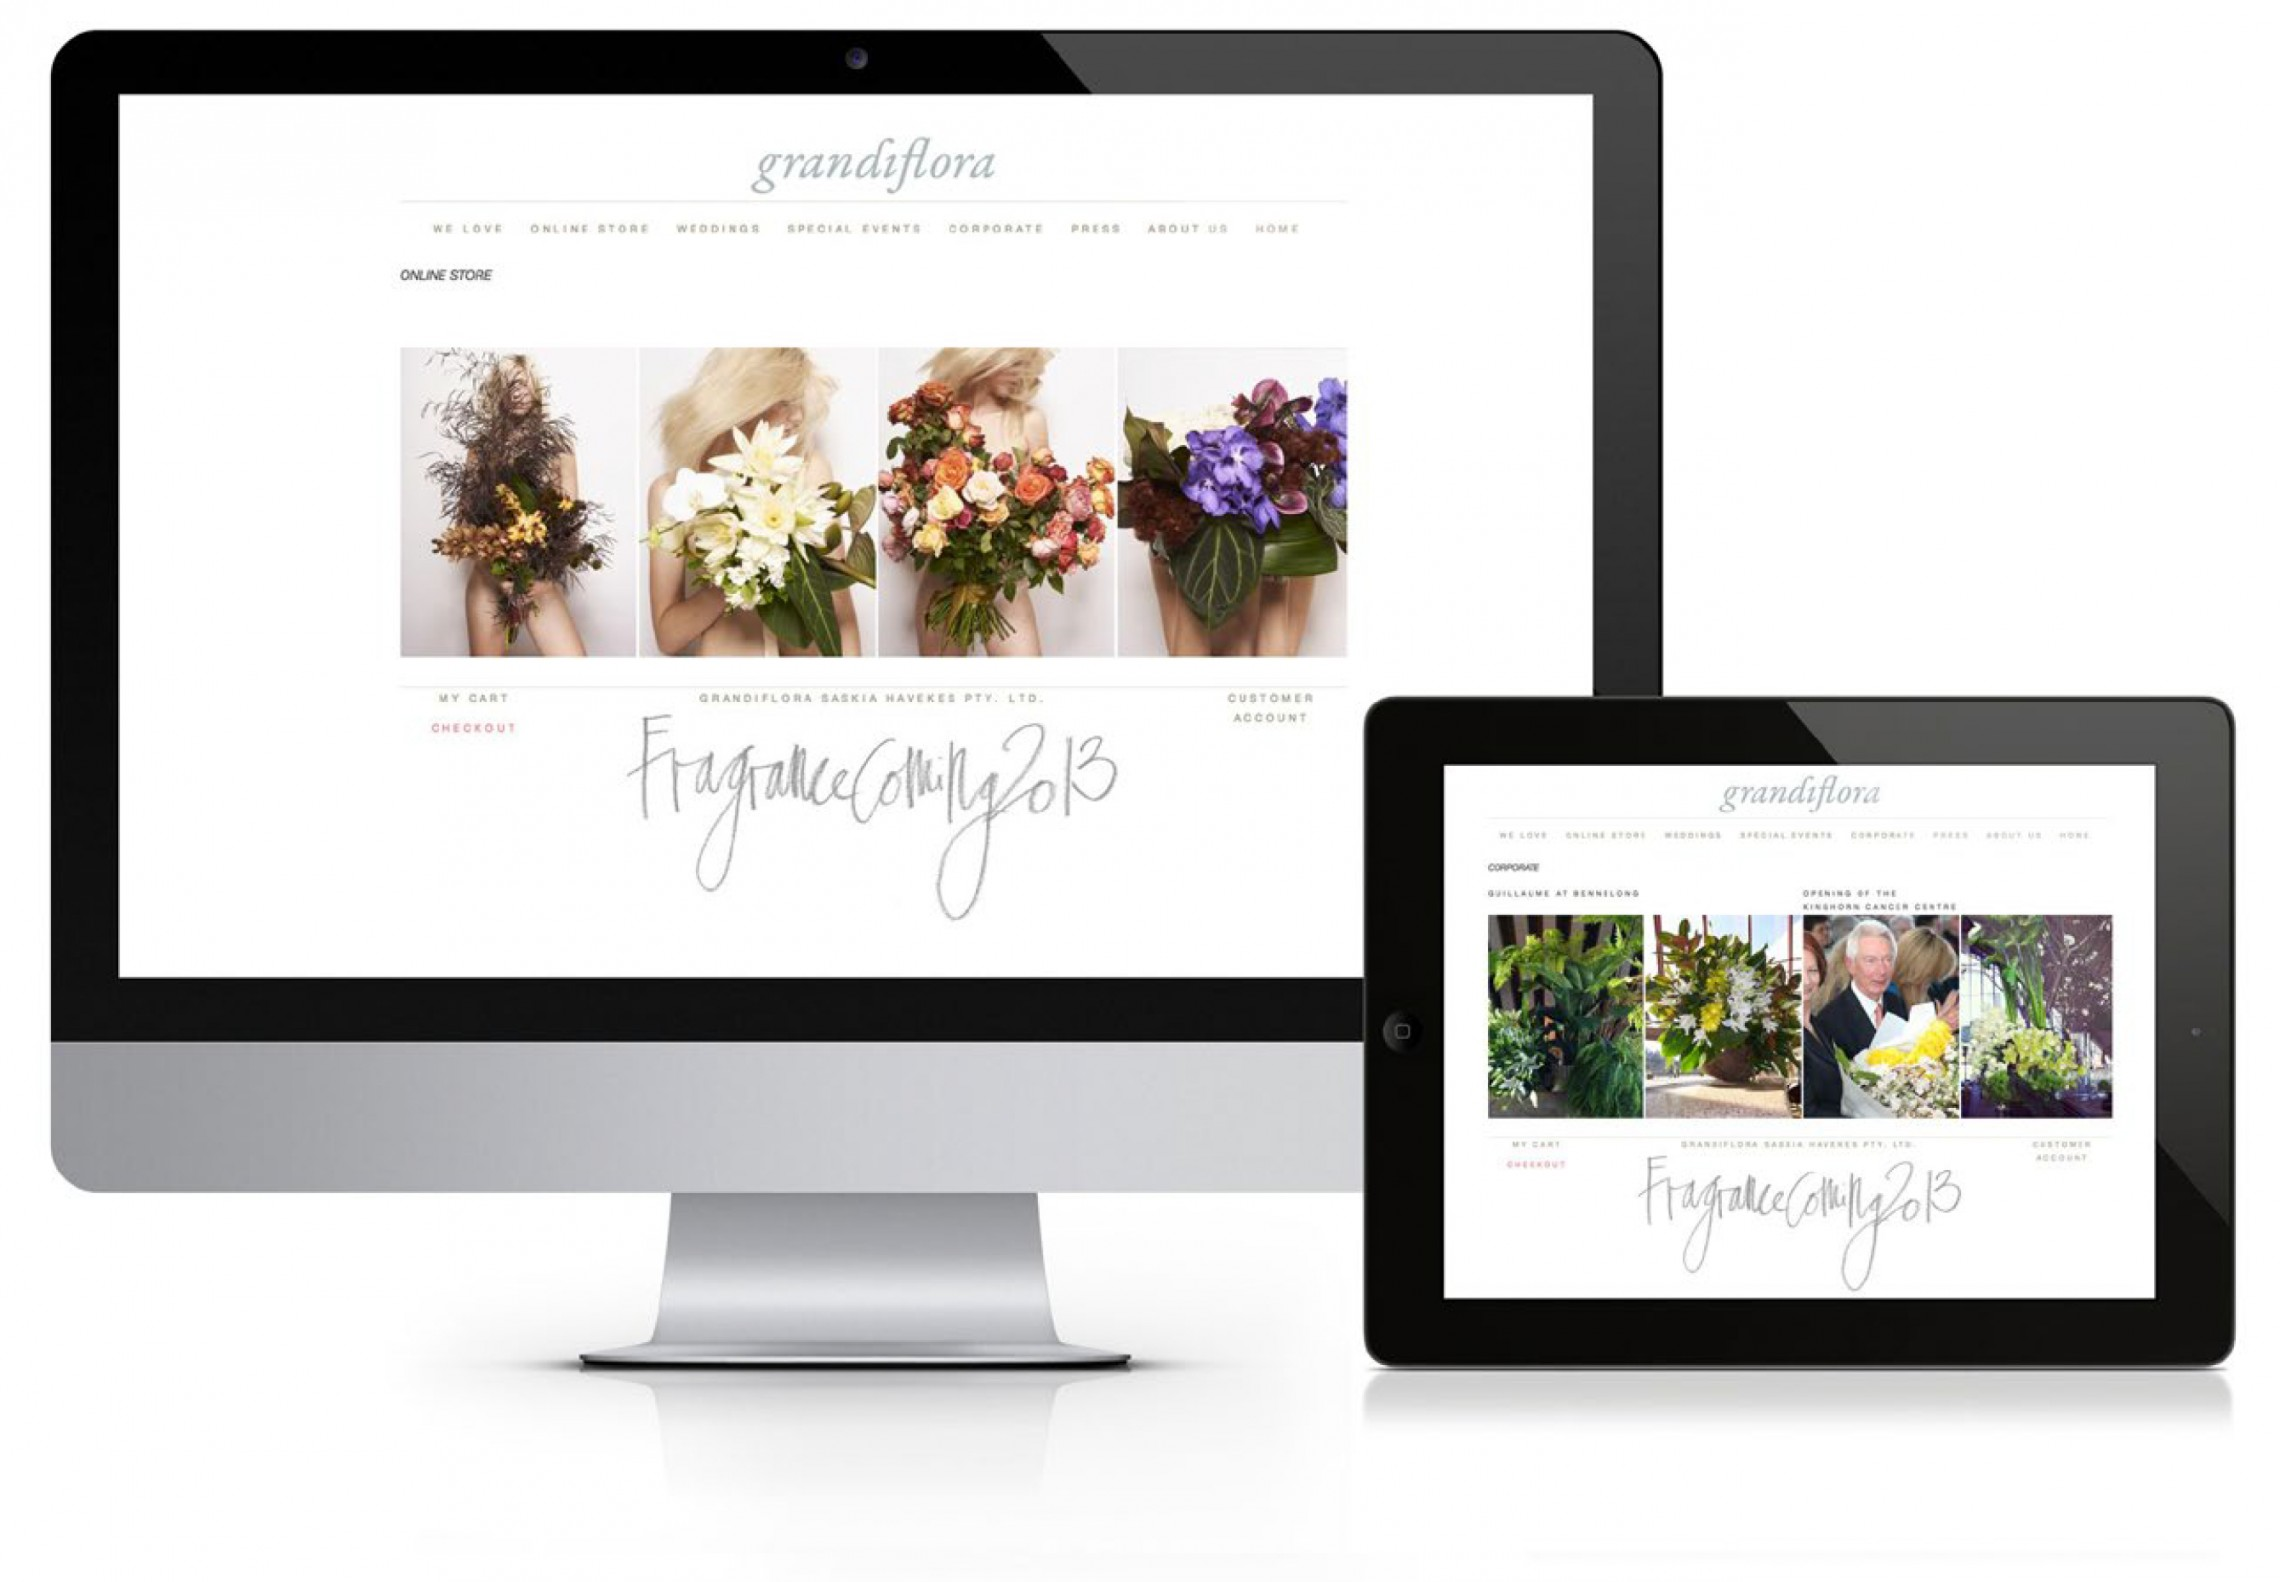 Grandiflora Website